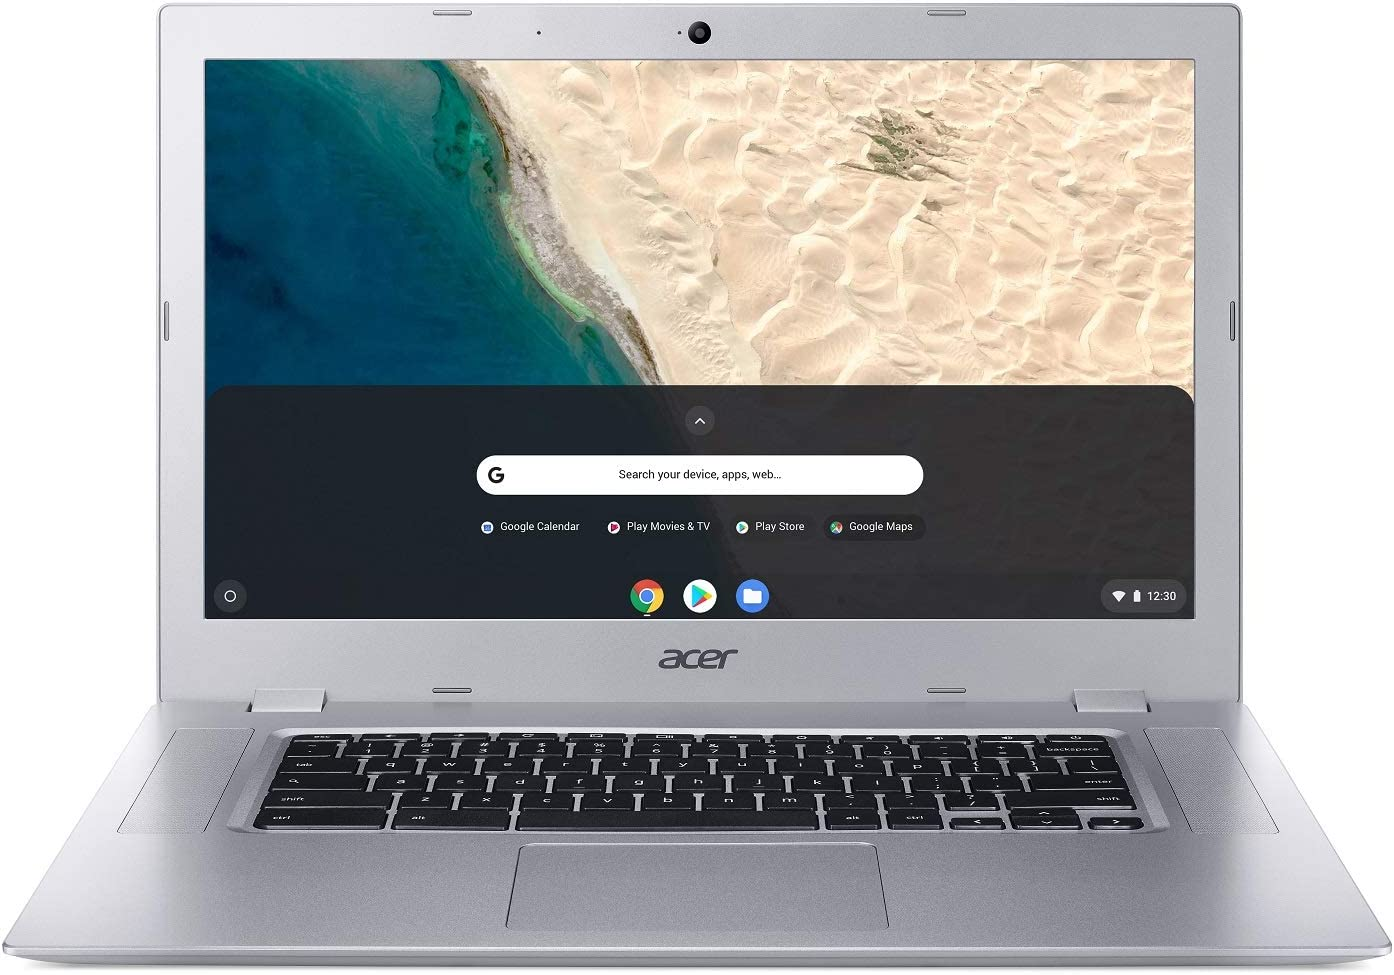 Acer Chromebook 315, AMD Dual-Core A4-9120C Processor, 15.6